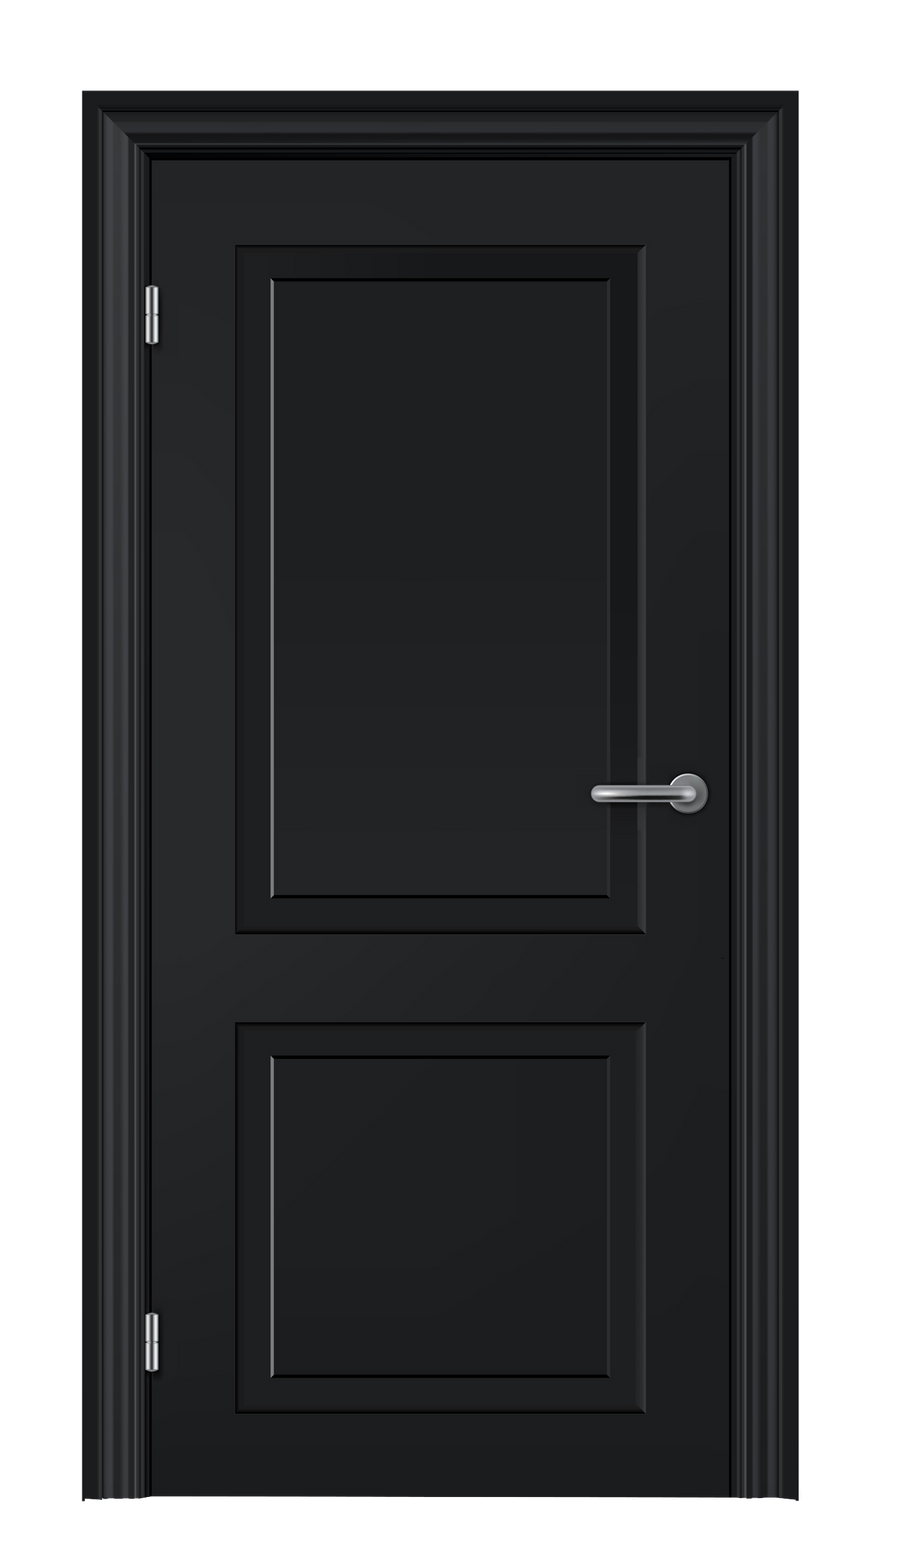 closed door png by viktoria lyn on deviantart book cover clipart free recipe book cover clipart